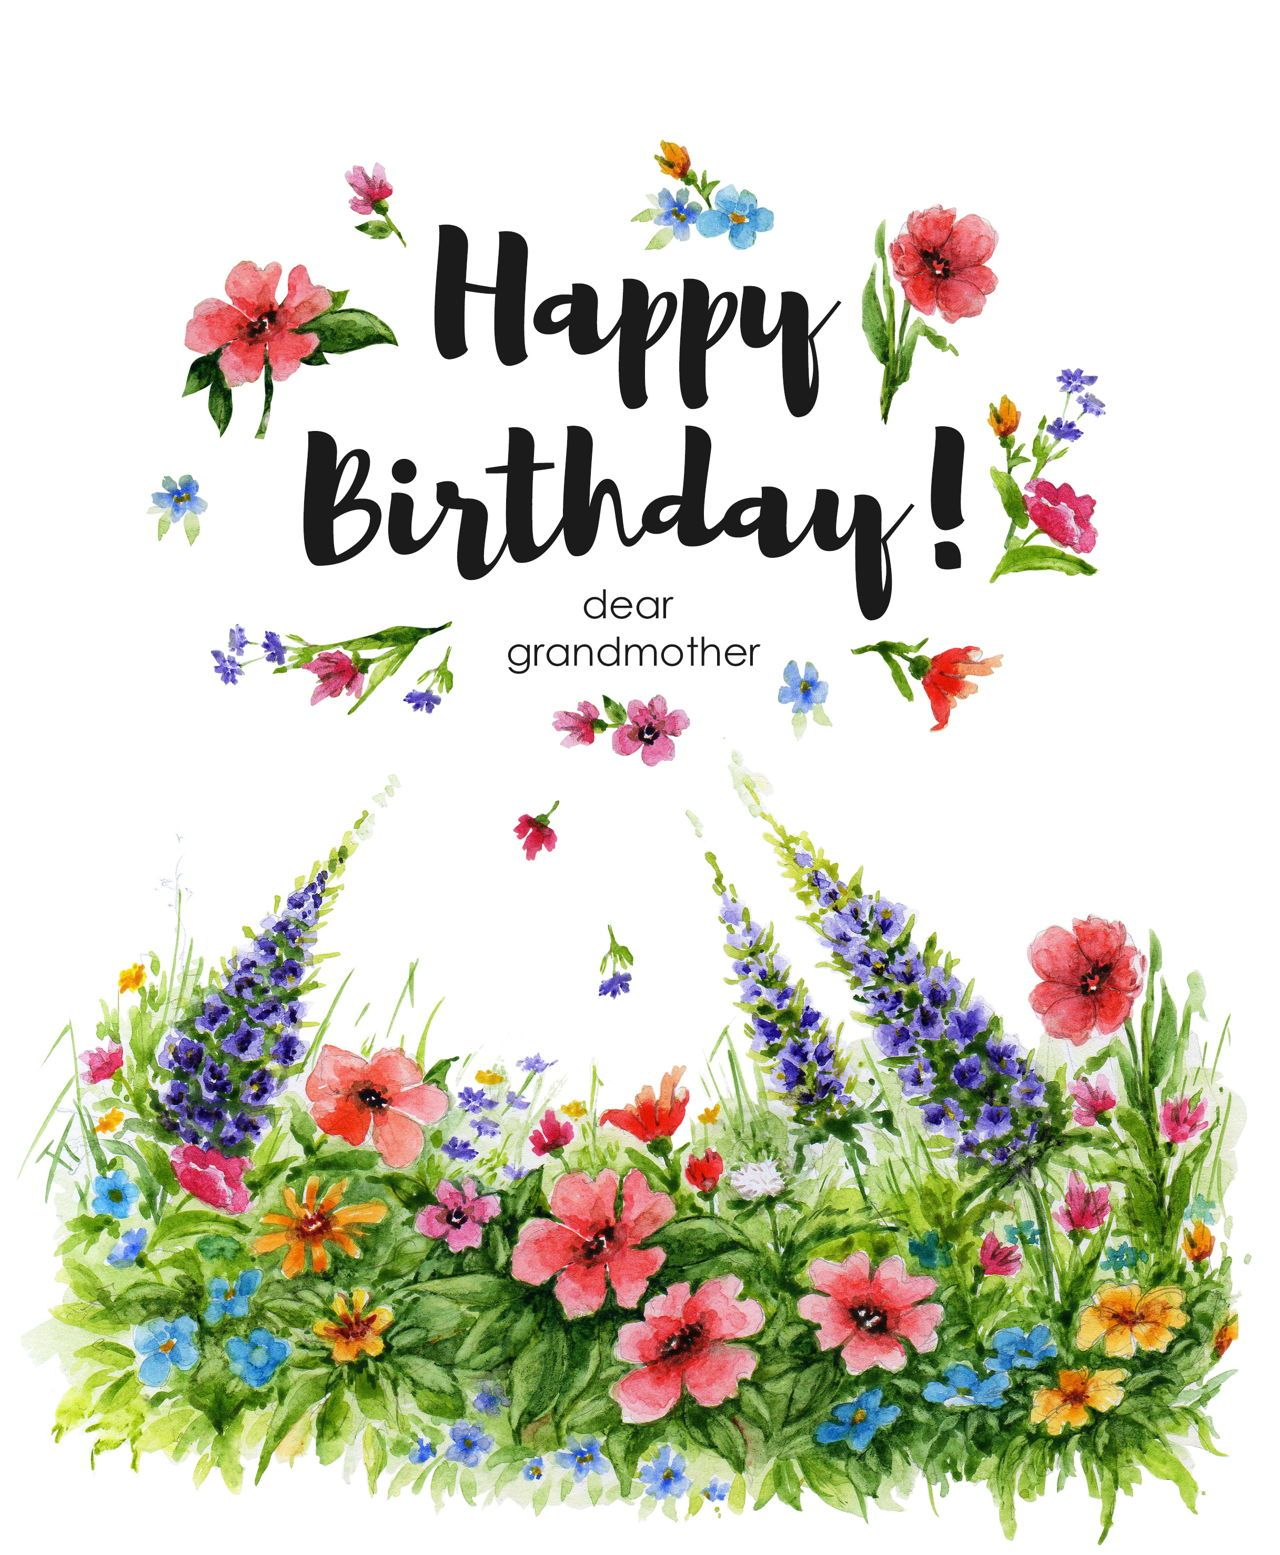 This Is What We Can Write In Birthday Cards To Express Our Affection Cool Birthday Cards Animated Birthday Cards Birthday Card Online